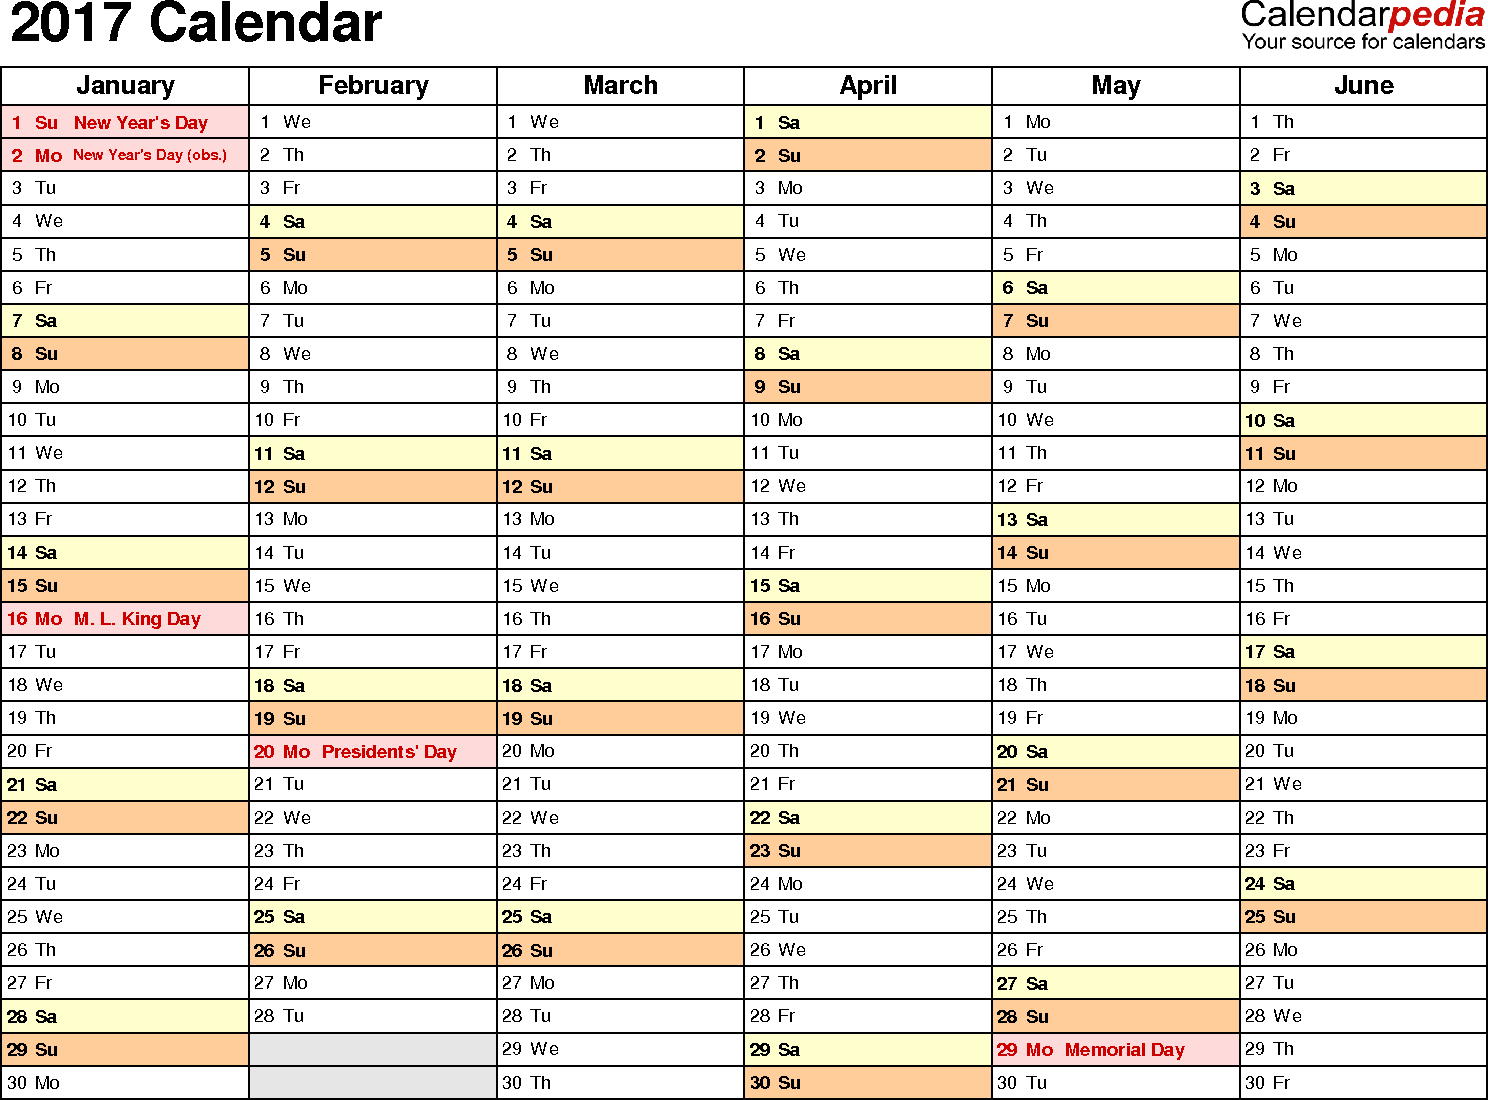 Ediblewildsus  Winning  Calendar  Download  Free Printable Excel Templates Xls With Fetching Template   Calendar For Excel Months Horizontally  Pages Landscape Orientation With Archaic Excel Gauge Also Ole Excel In Addition Subtraction Excel Formula And Cells Excel Vba As Well As Using Index In Excel Additionally Convert Word To Excel  From Calendarpediacom With Ediblewildsus  Fetching  Calendar  Download  Free Printable Excel Templates Xls With Archaic Template   Calendar For Excel Months Horizontally  Pages Landscape Orientation And Winning Excel Gauge Also Ole Excel In Addition Subtraction Excel Formula From Calendarpediacom